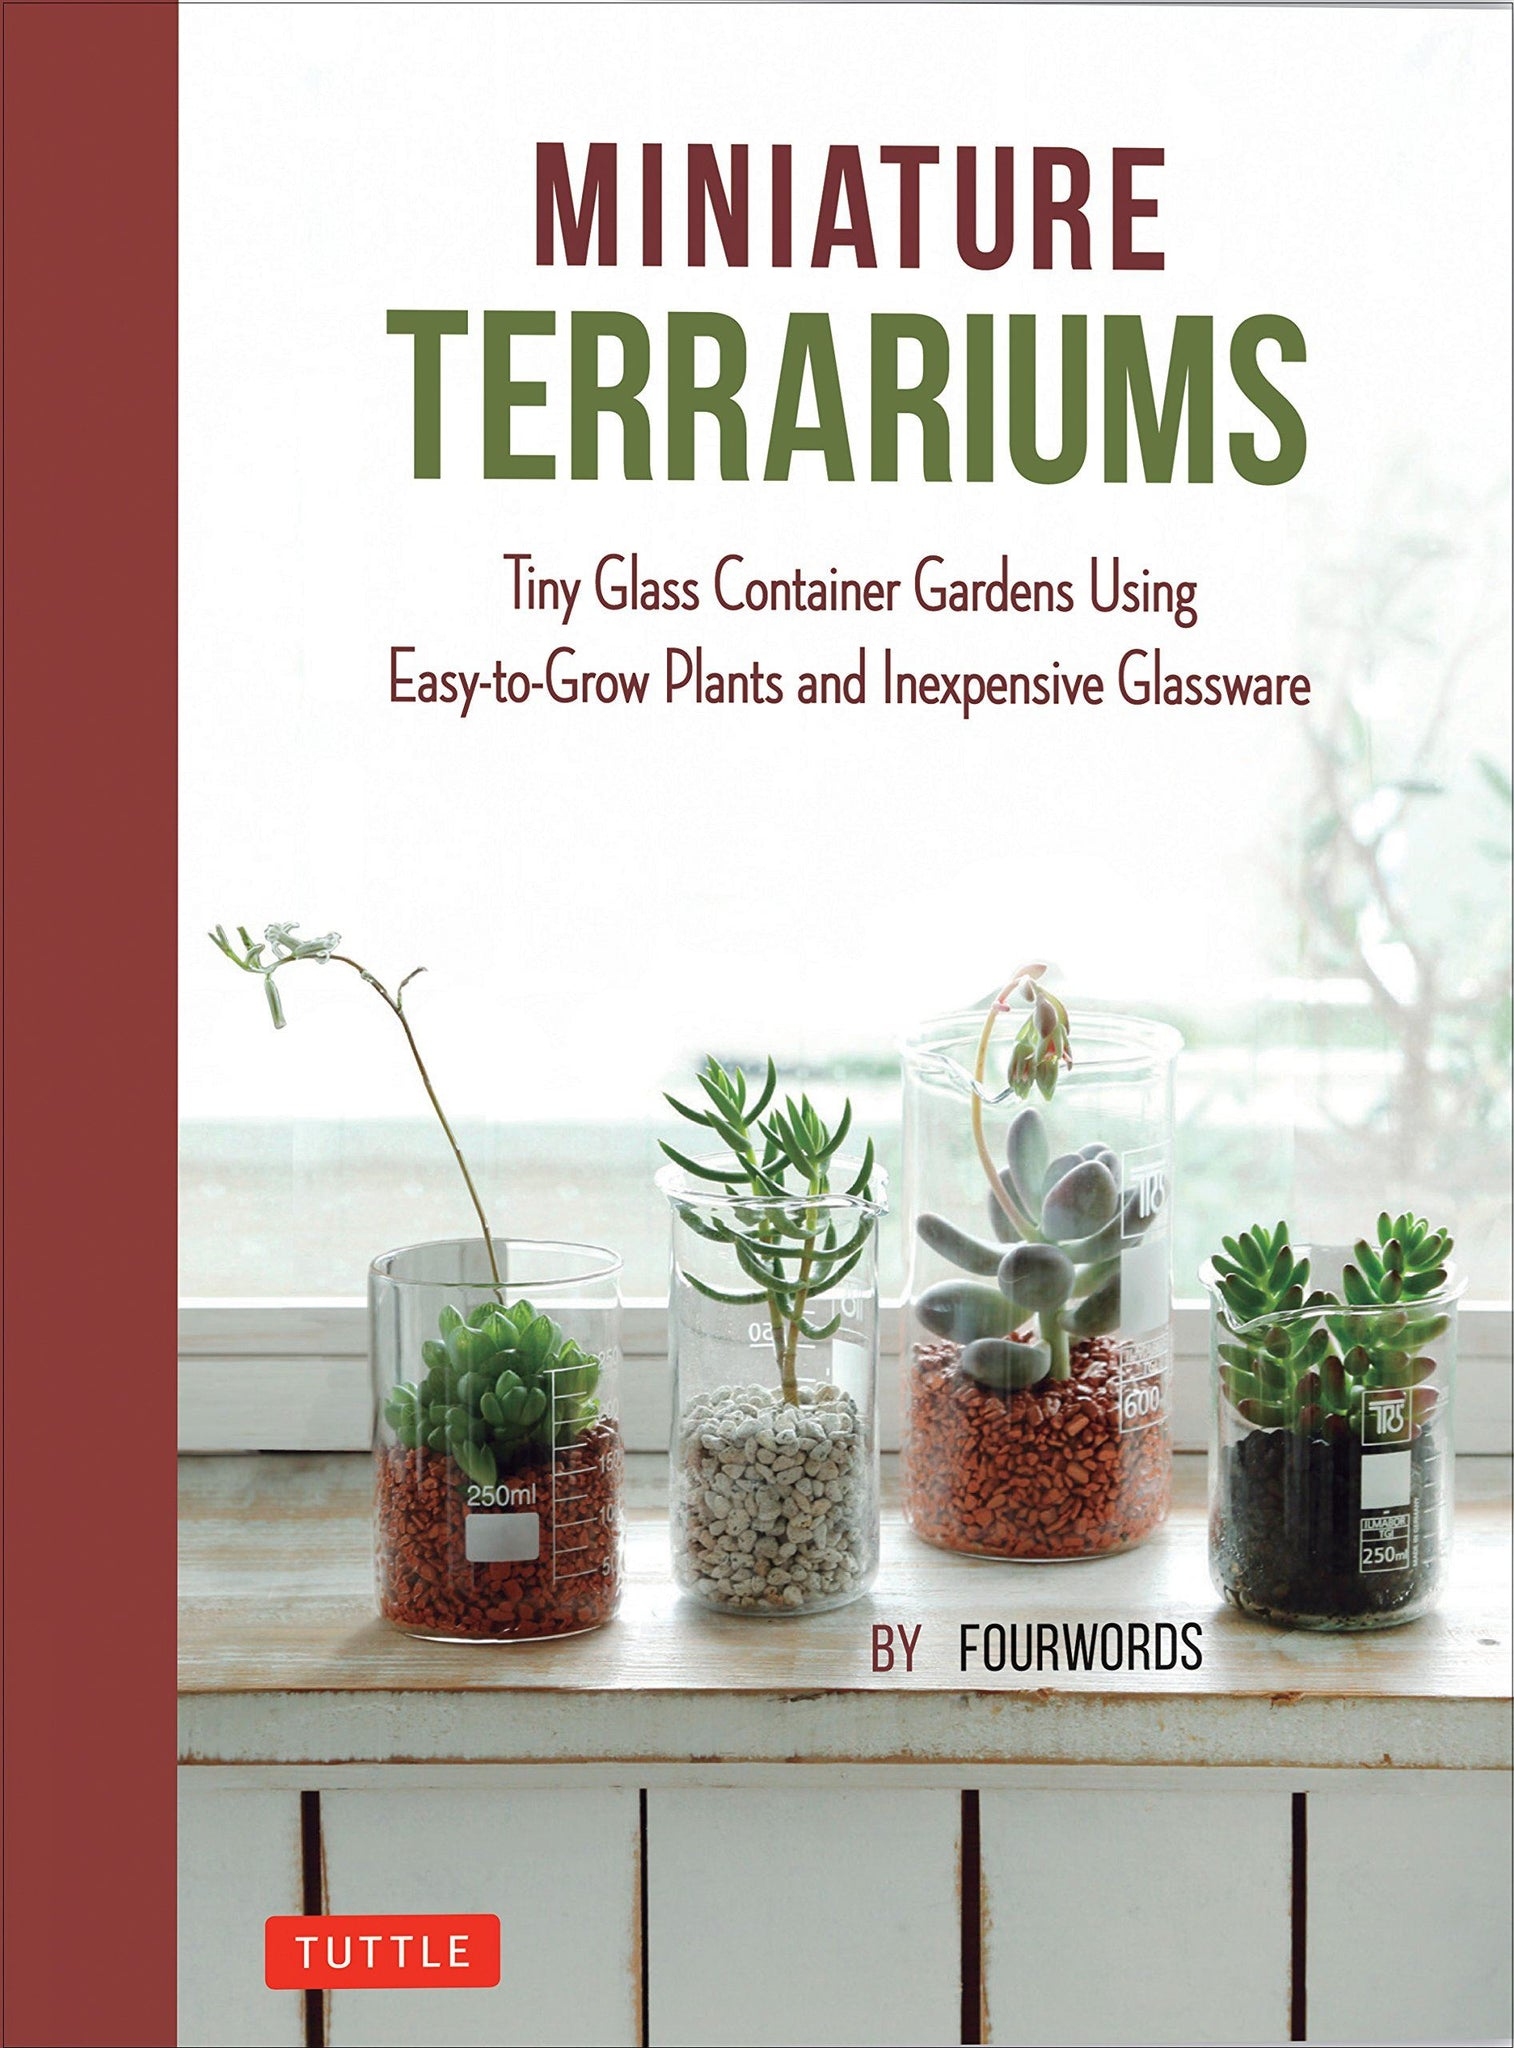 Miniature Terrariums